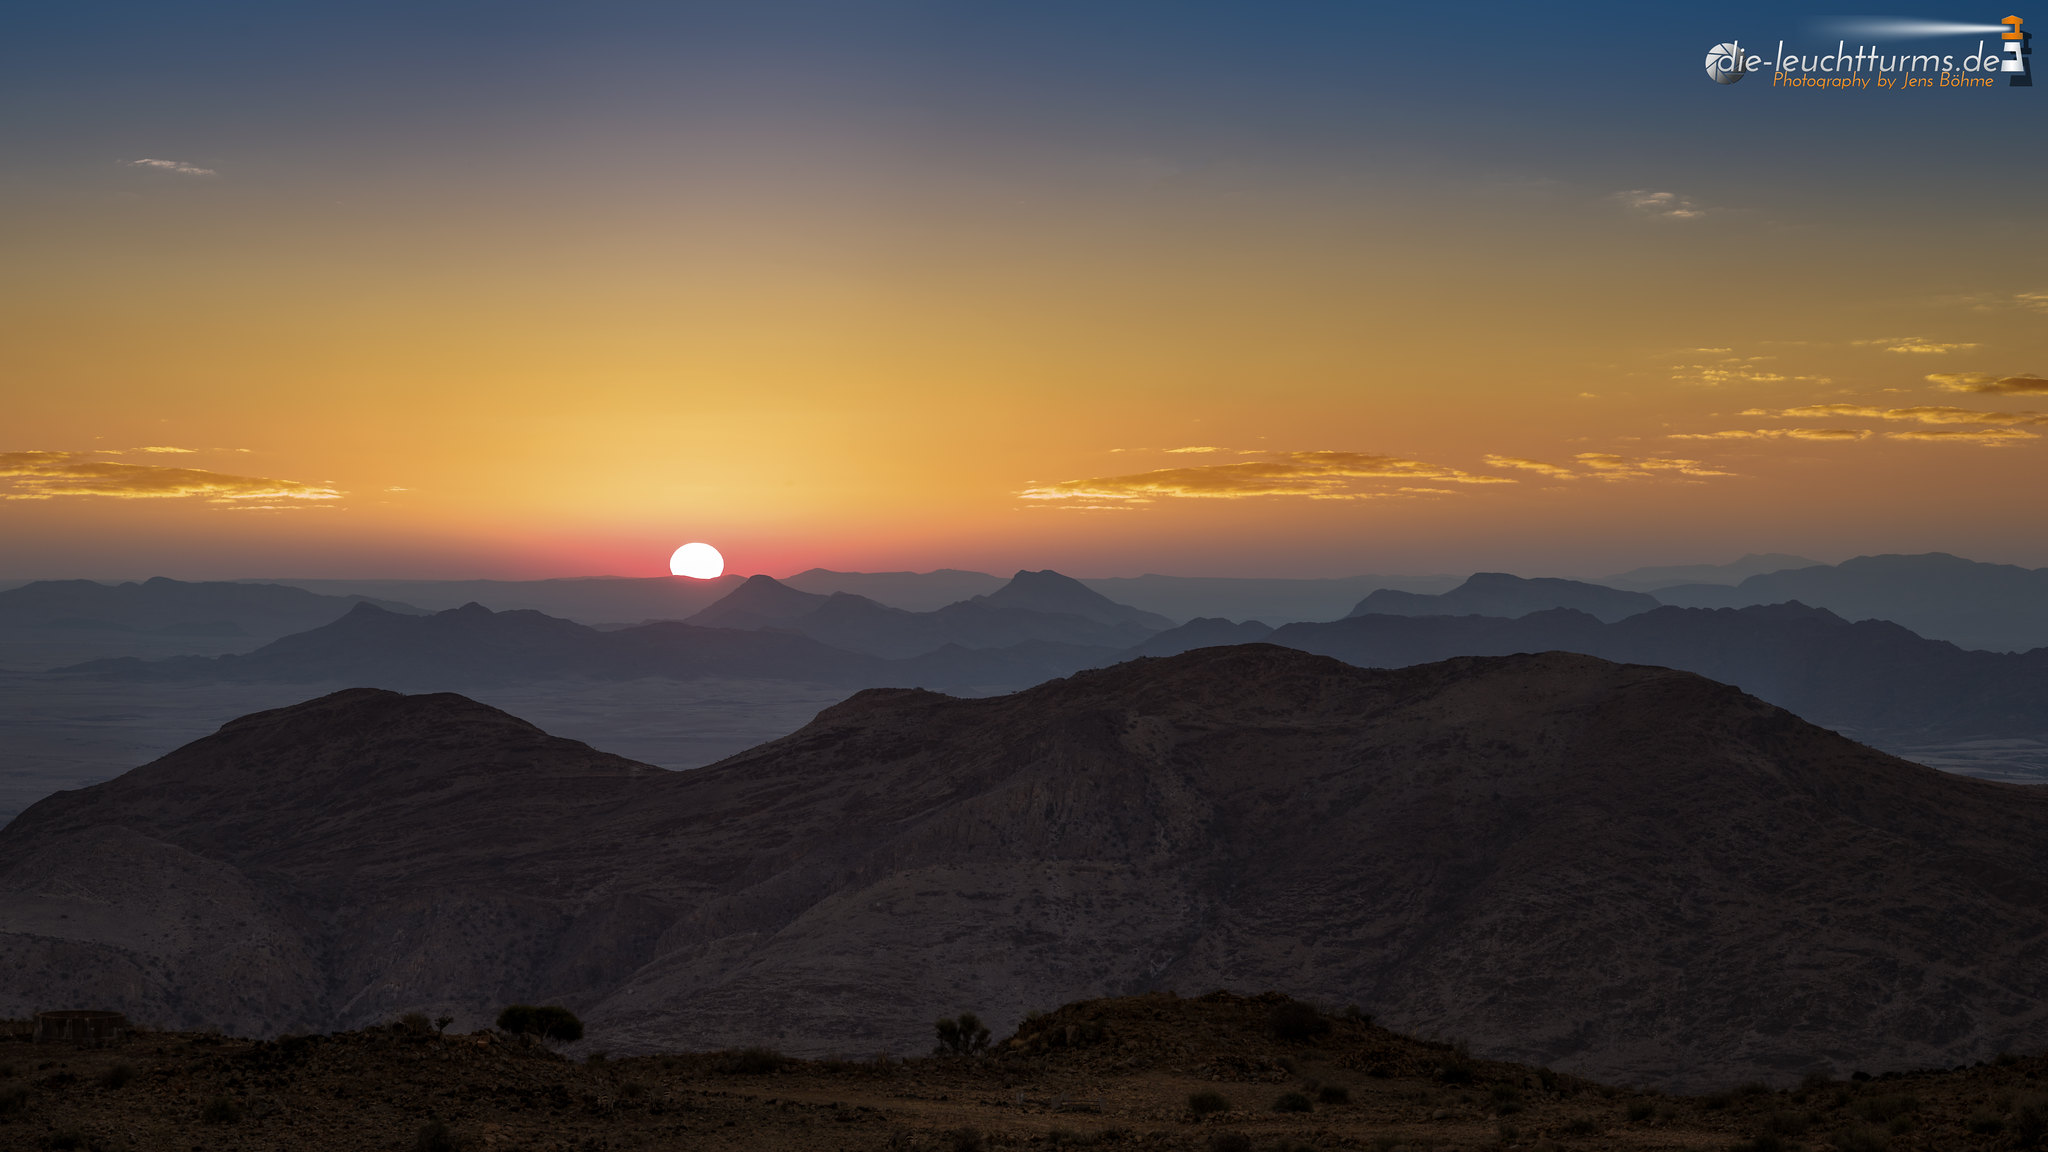 The sun goes down over the Namib